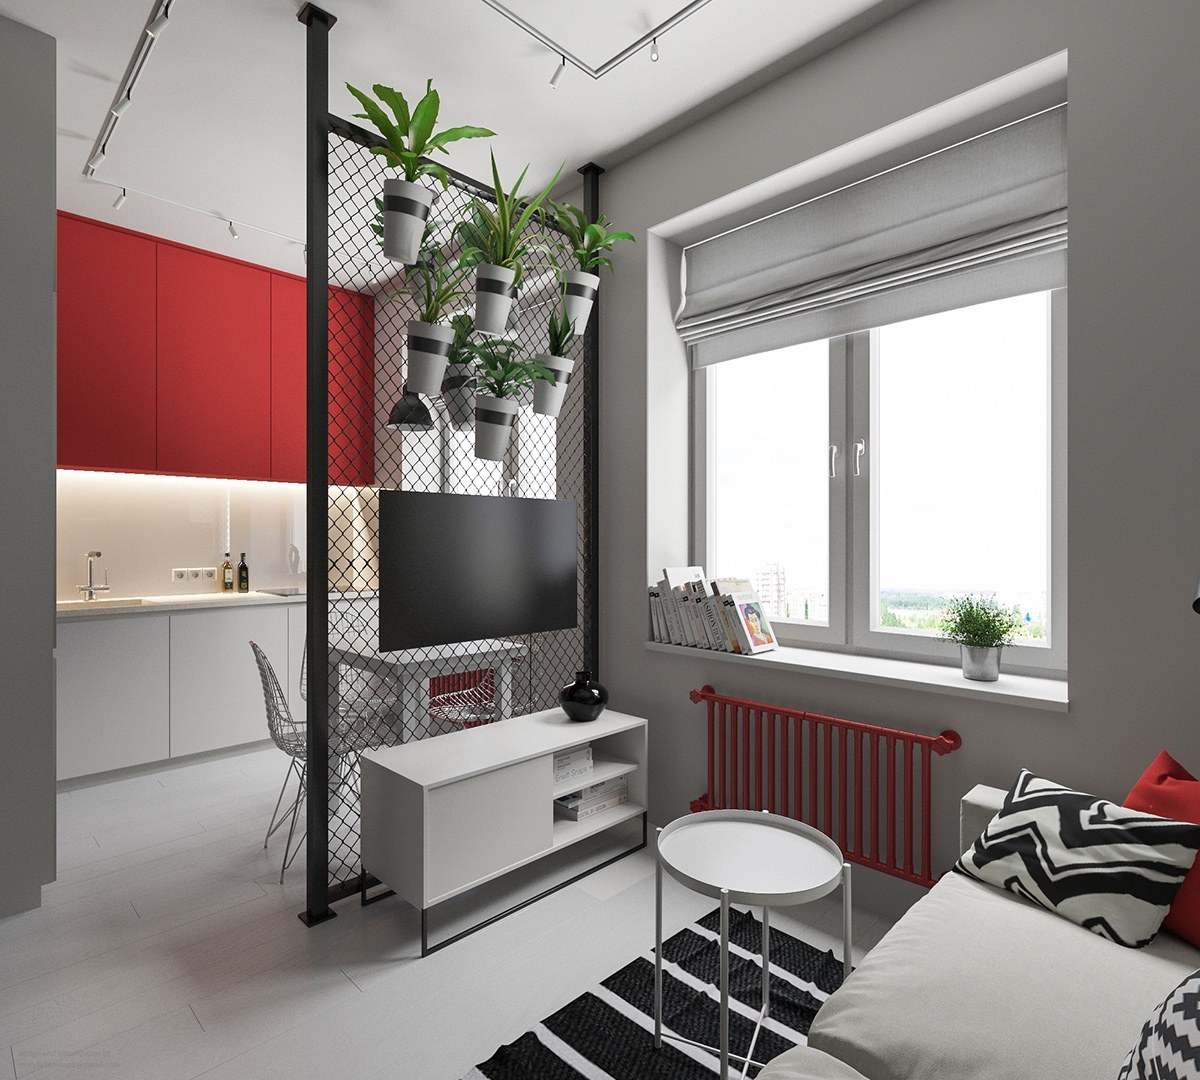 Small Apartment Design: 3 Small Apartments That Rock Uncommon Color Schemes [With